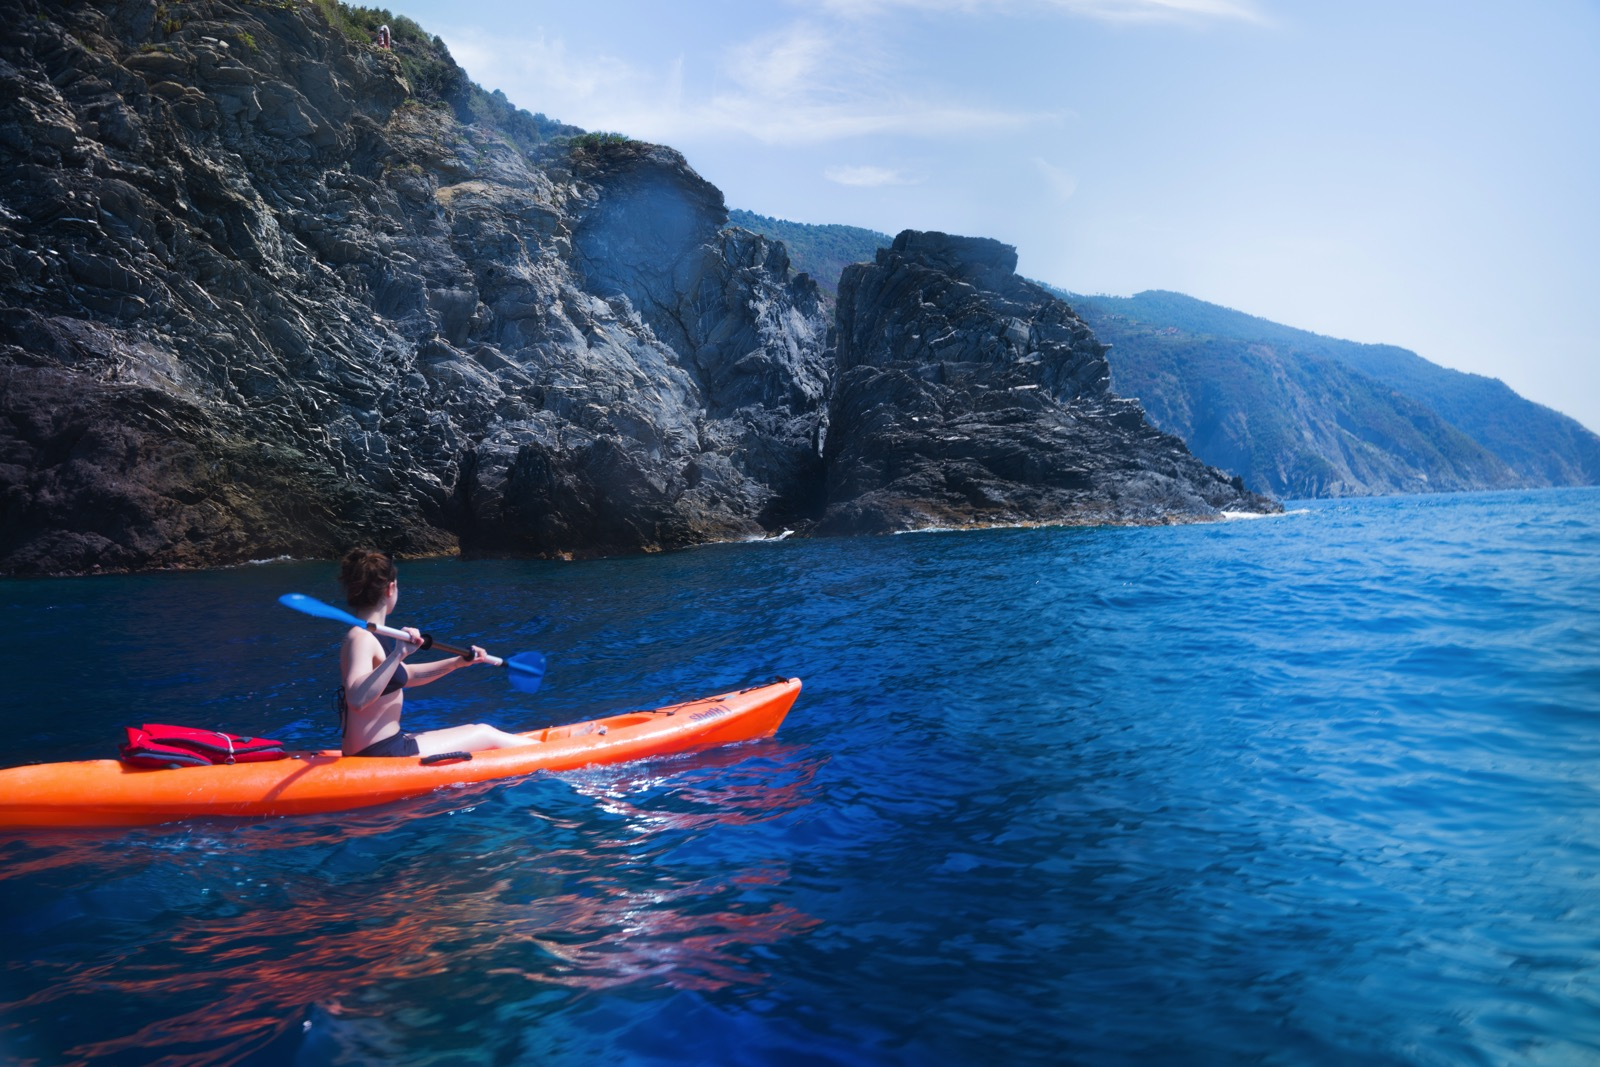 Kayaking south along the coast from Riomaggiore in the Ligurian Sea.   (Liguria, Italy.)